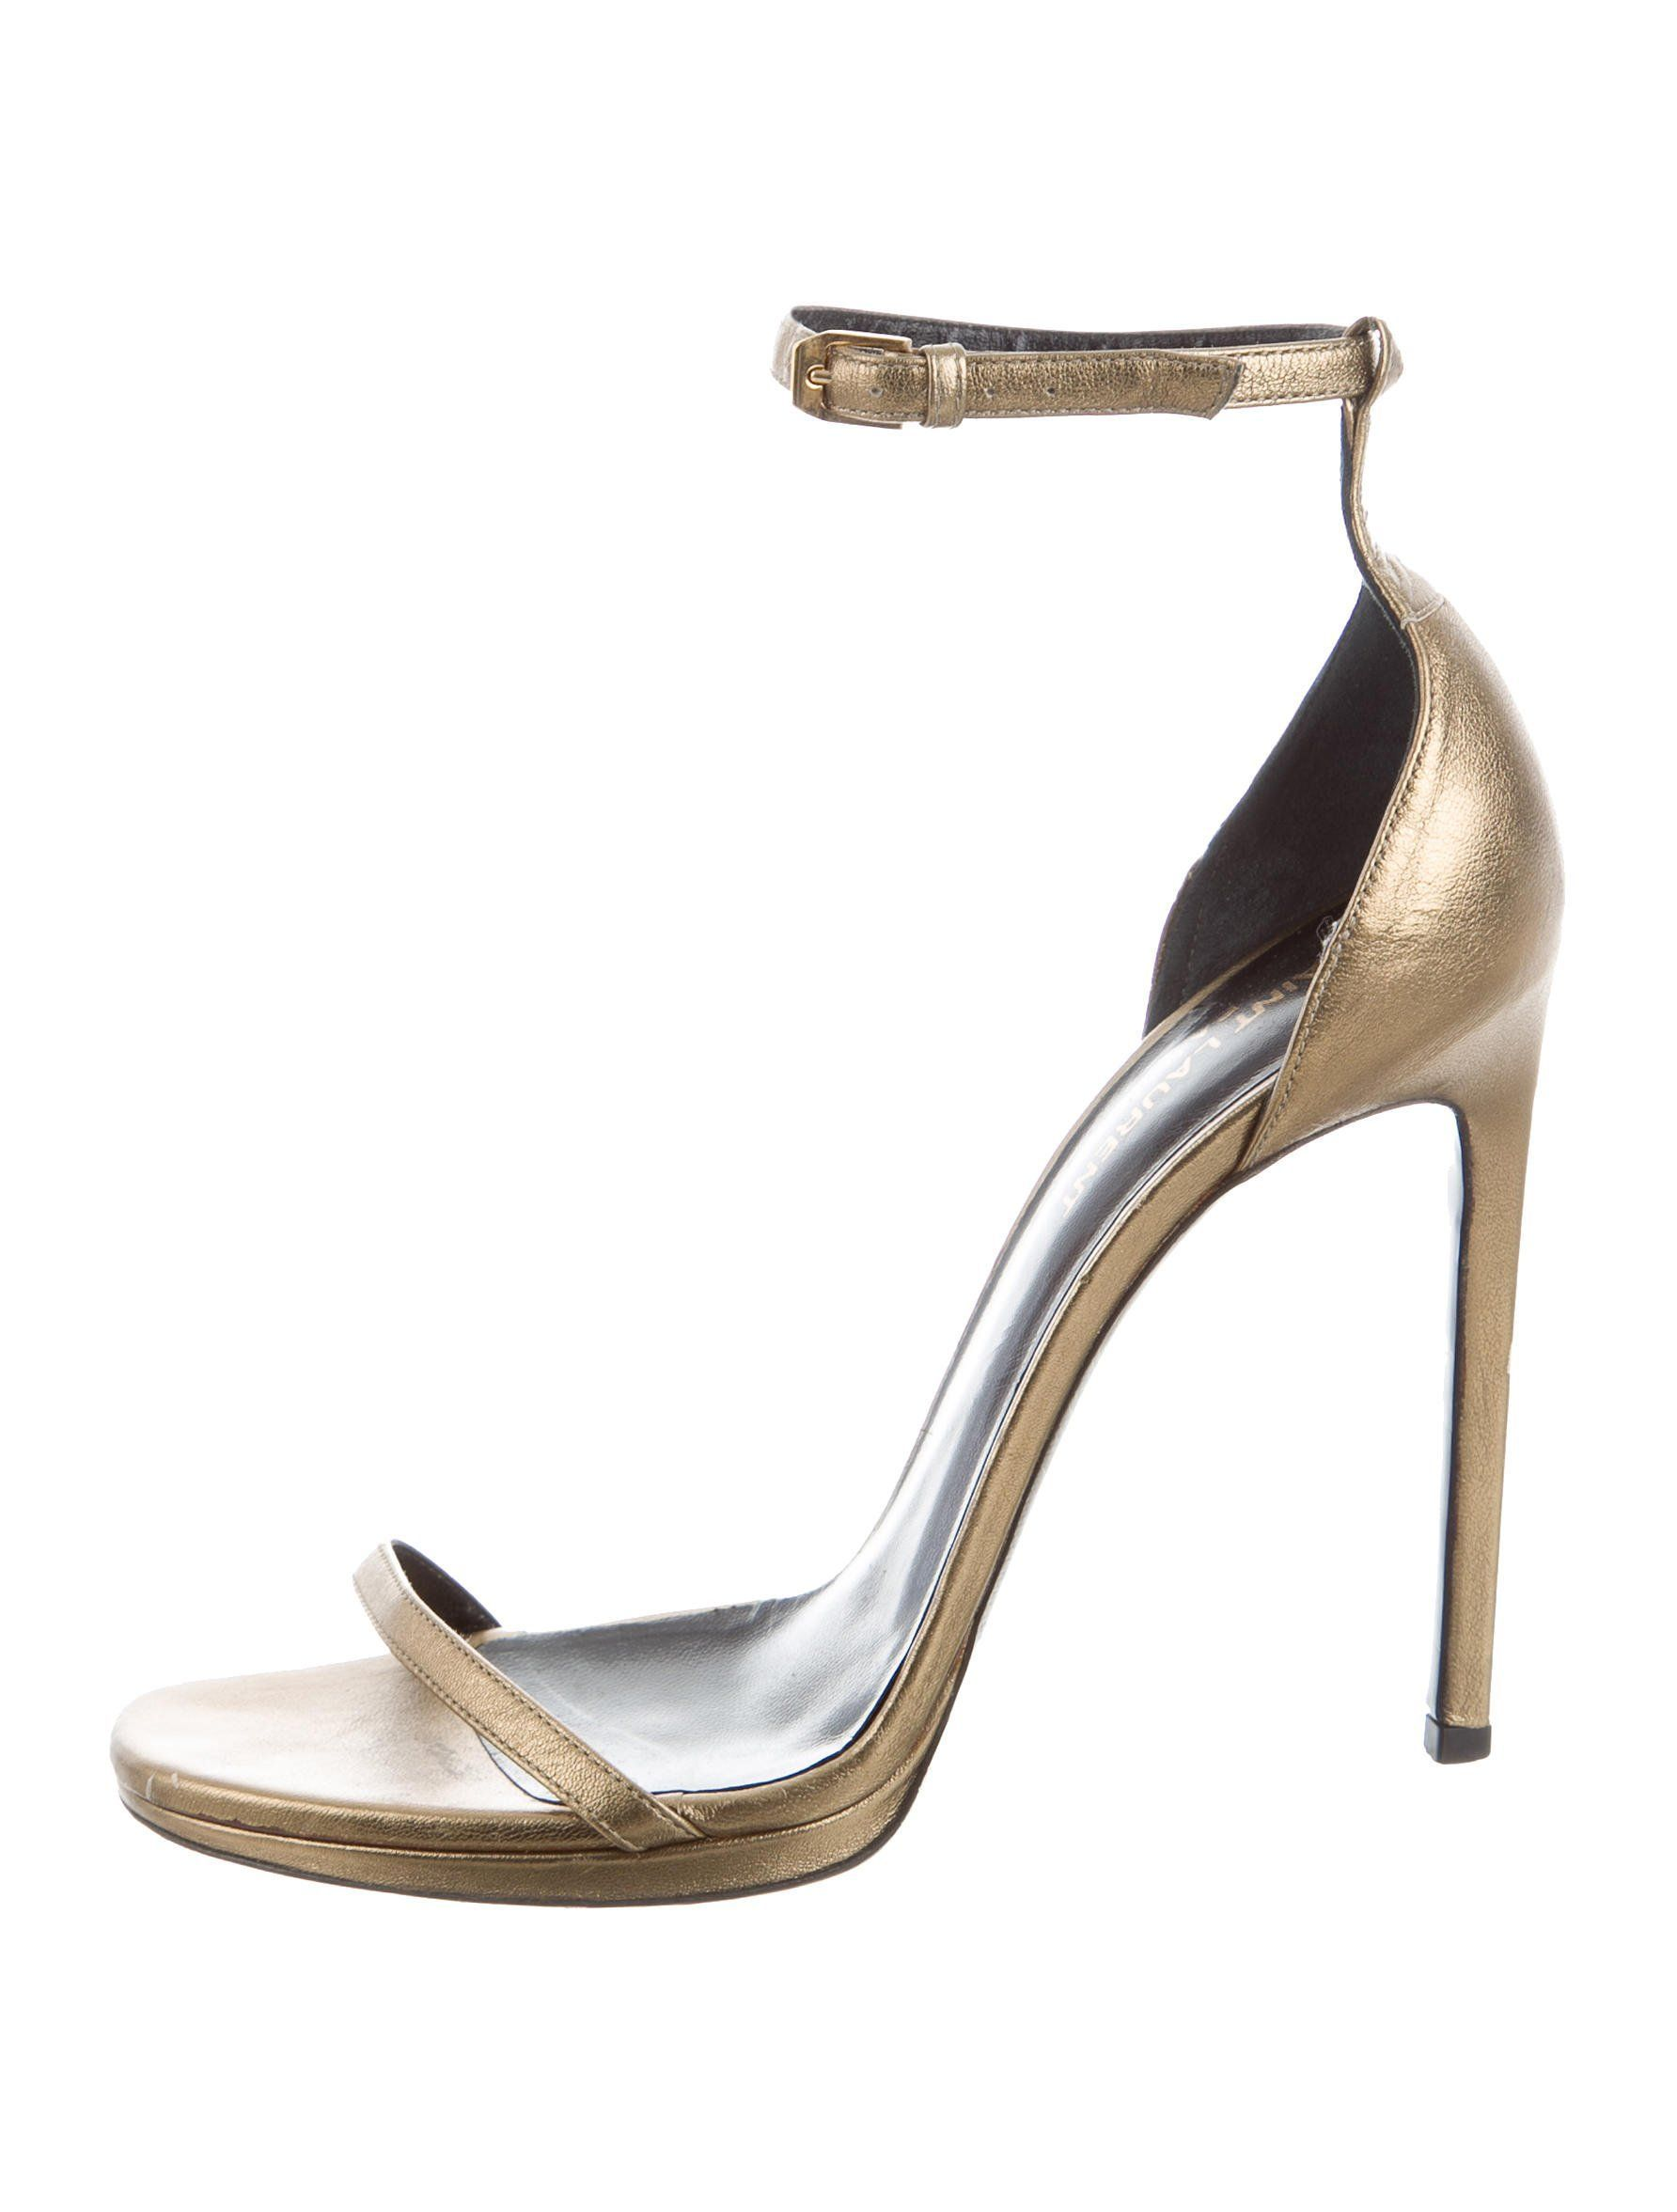 Yves Saint Laurent Ayers Ankle-Strap Pumps sale best wholesale clearance fashionable discount manchester great sale PMv83nrs